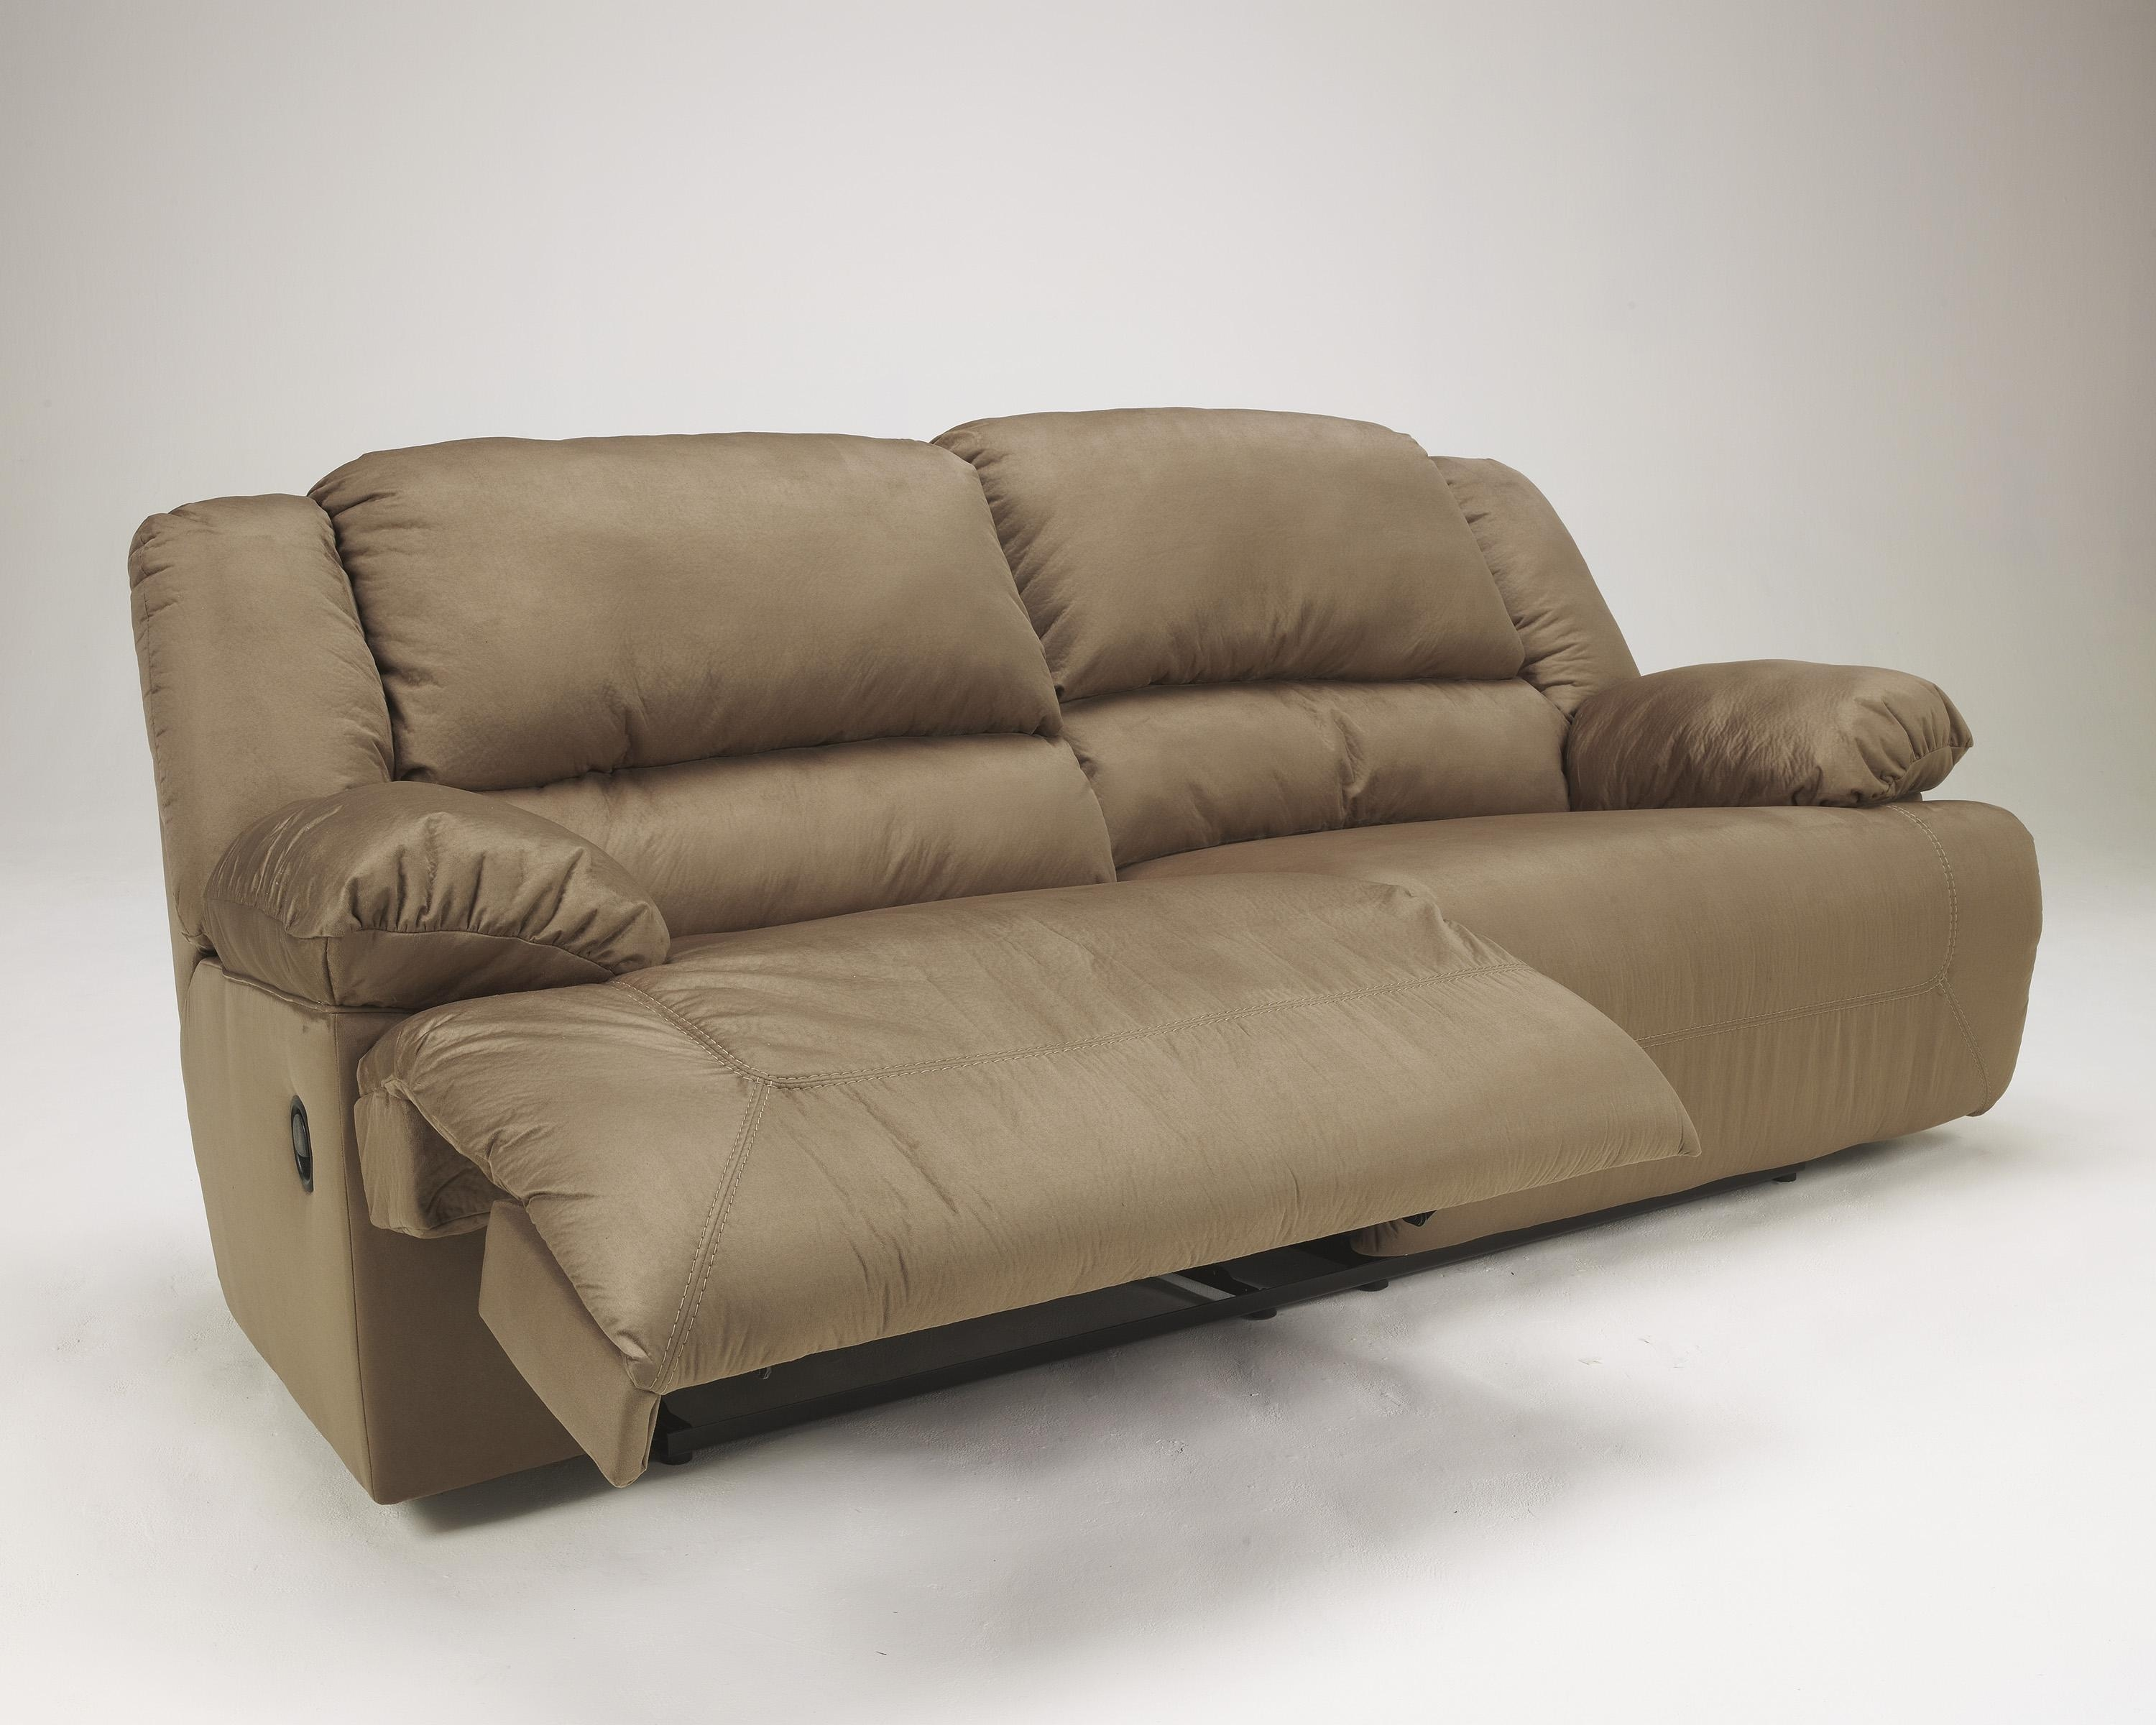 Hogan Contemporary Mocha 2 Seat Reclining Sofa | Living Rooms With Regard To 2 Seat Recliner Sofas (View 6 of 20)